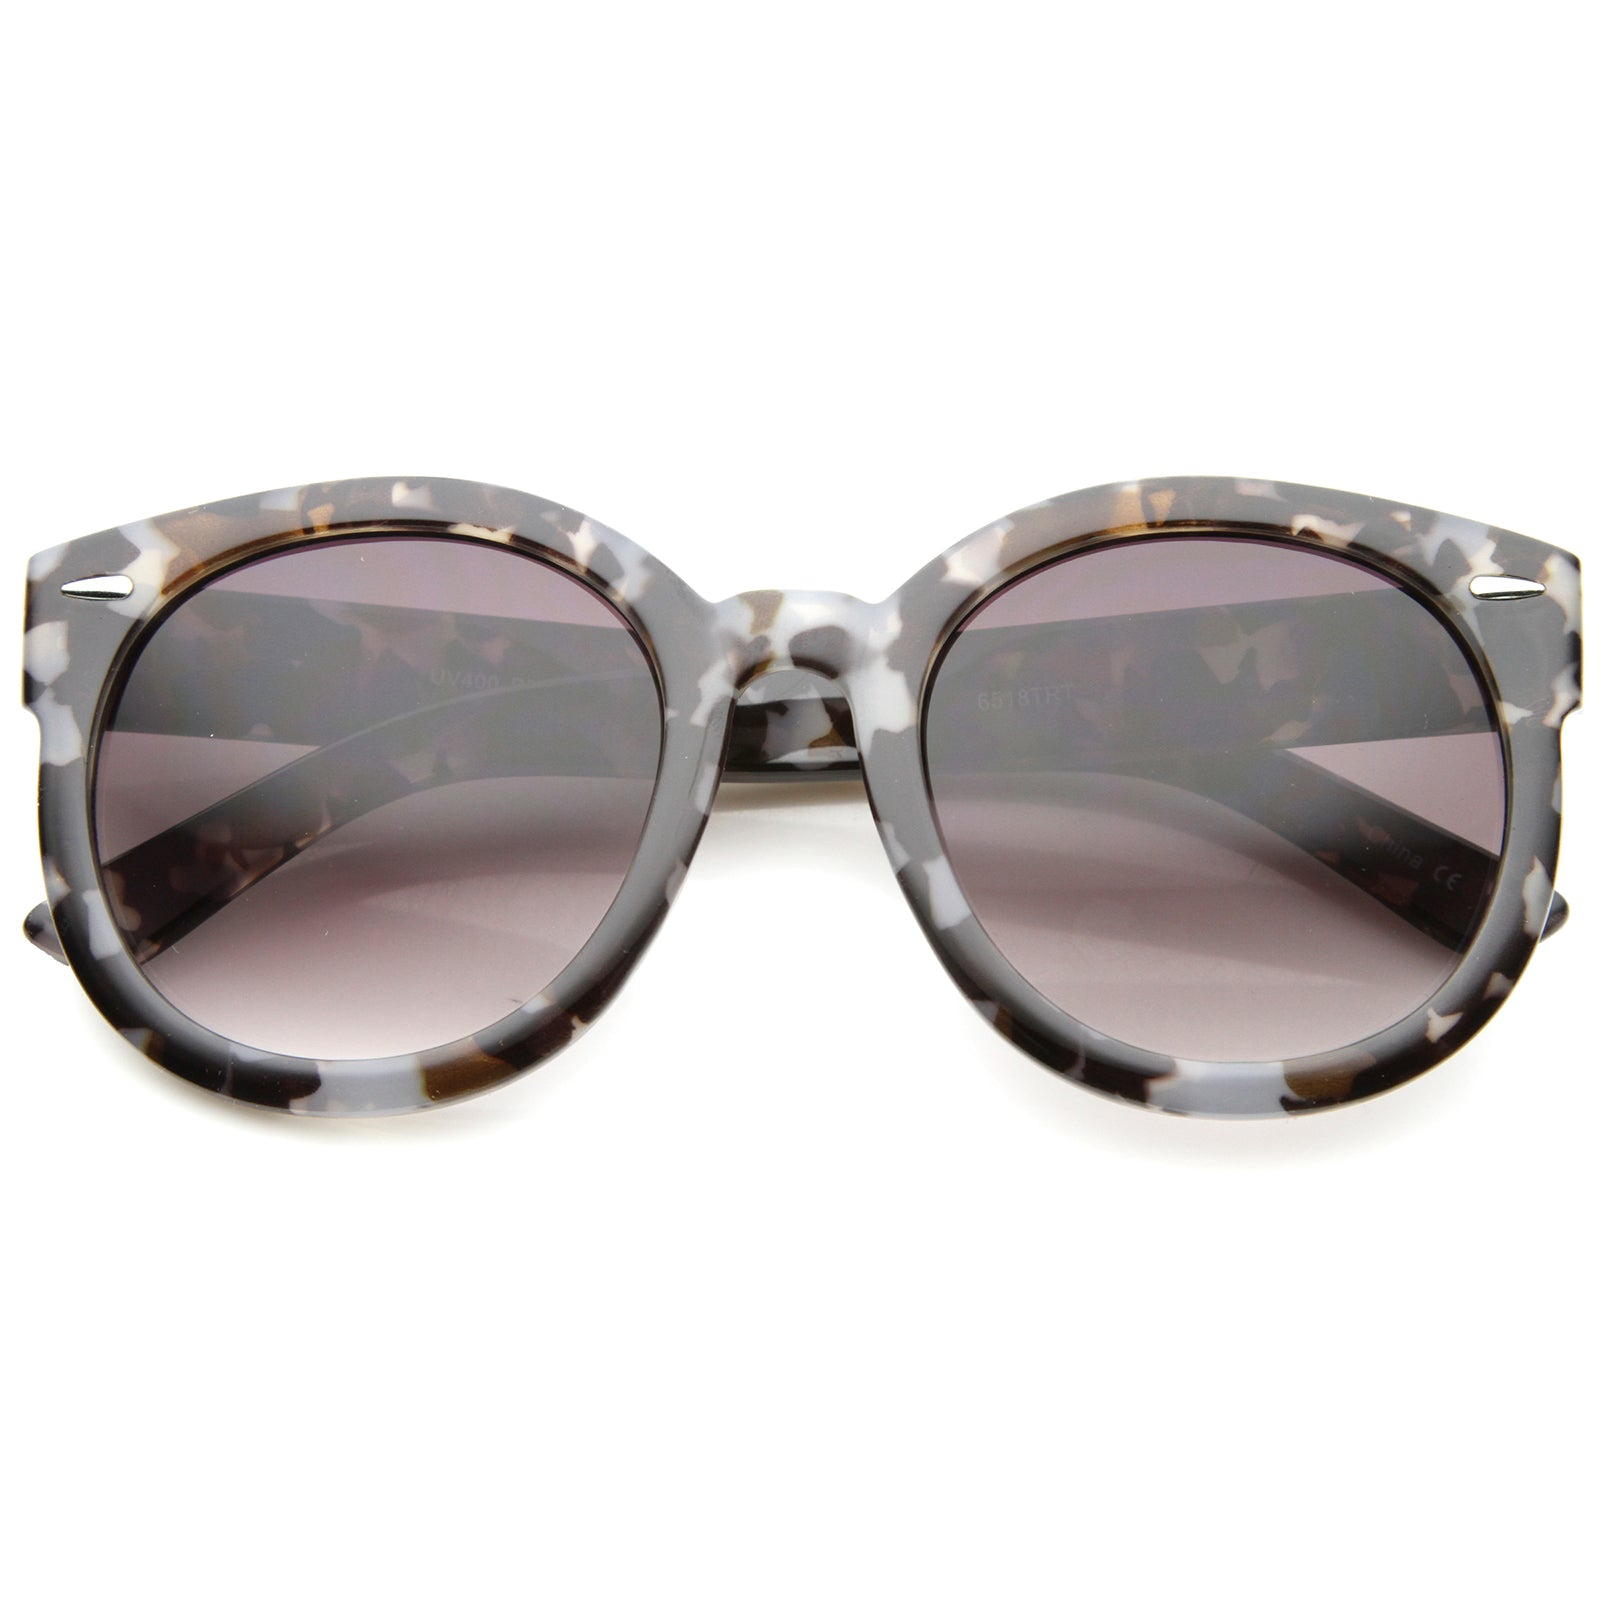 Womens Oversized Sunglasses With UV400 Protected Composite Lens - sunglass.la - 1